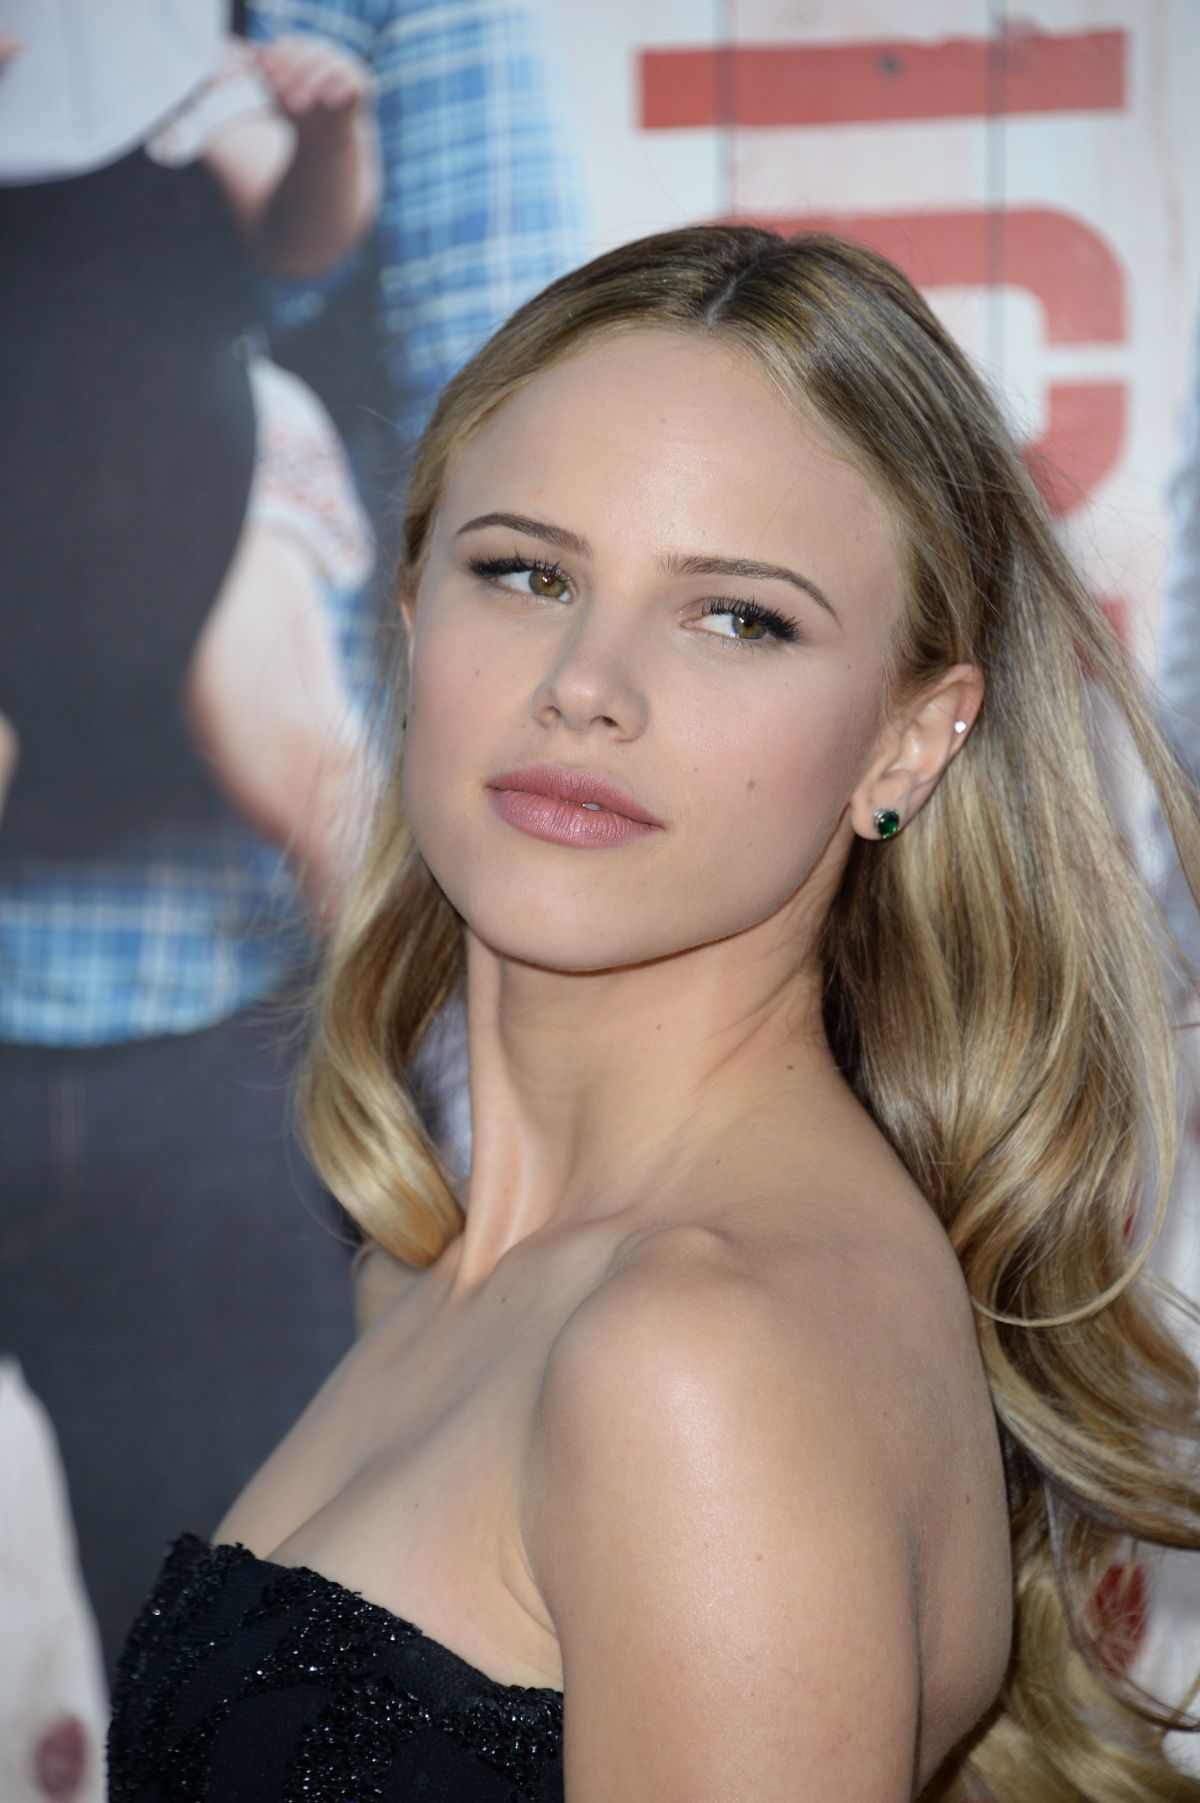 halston sage braless showing huge cleavage at 3rd annual